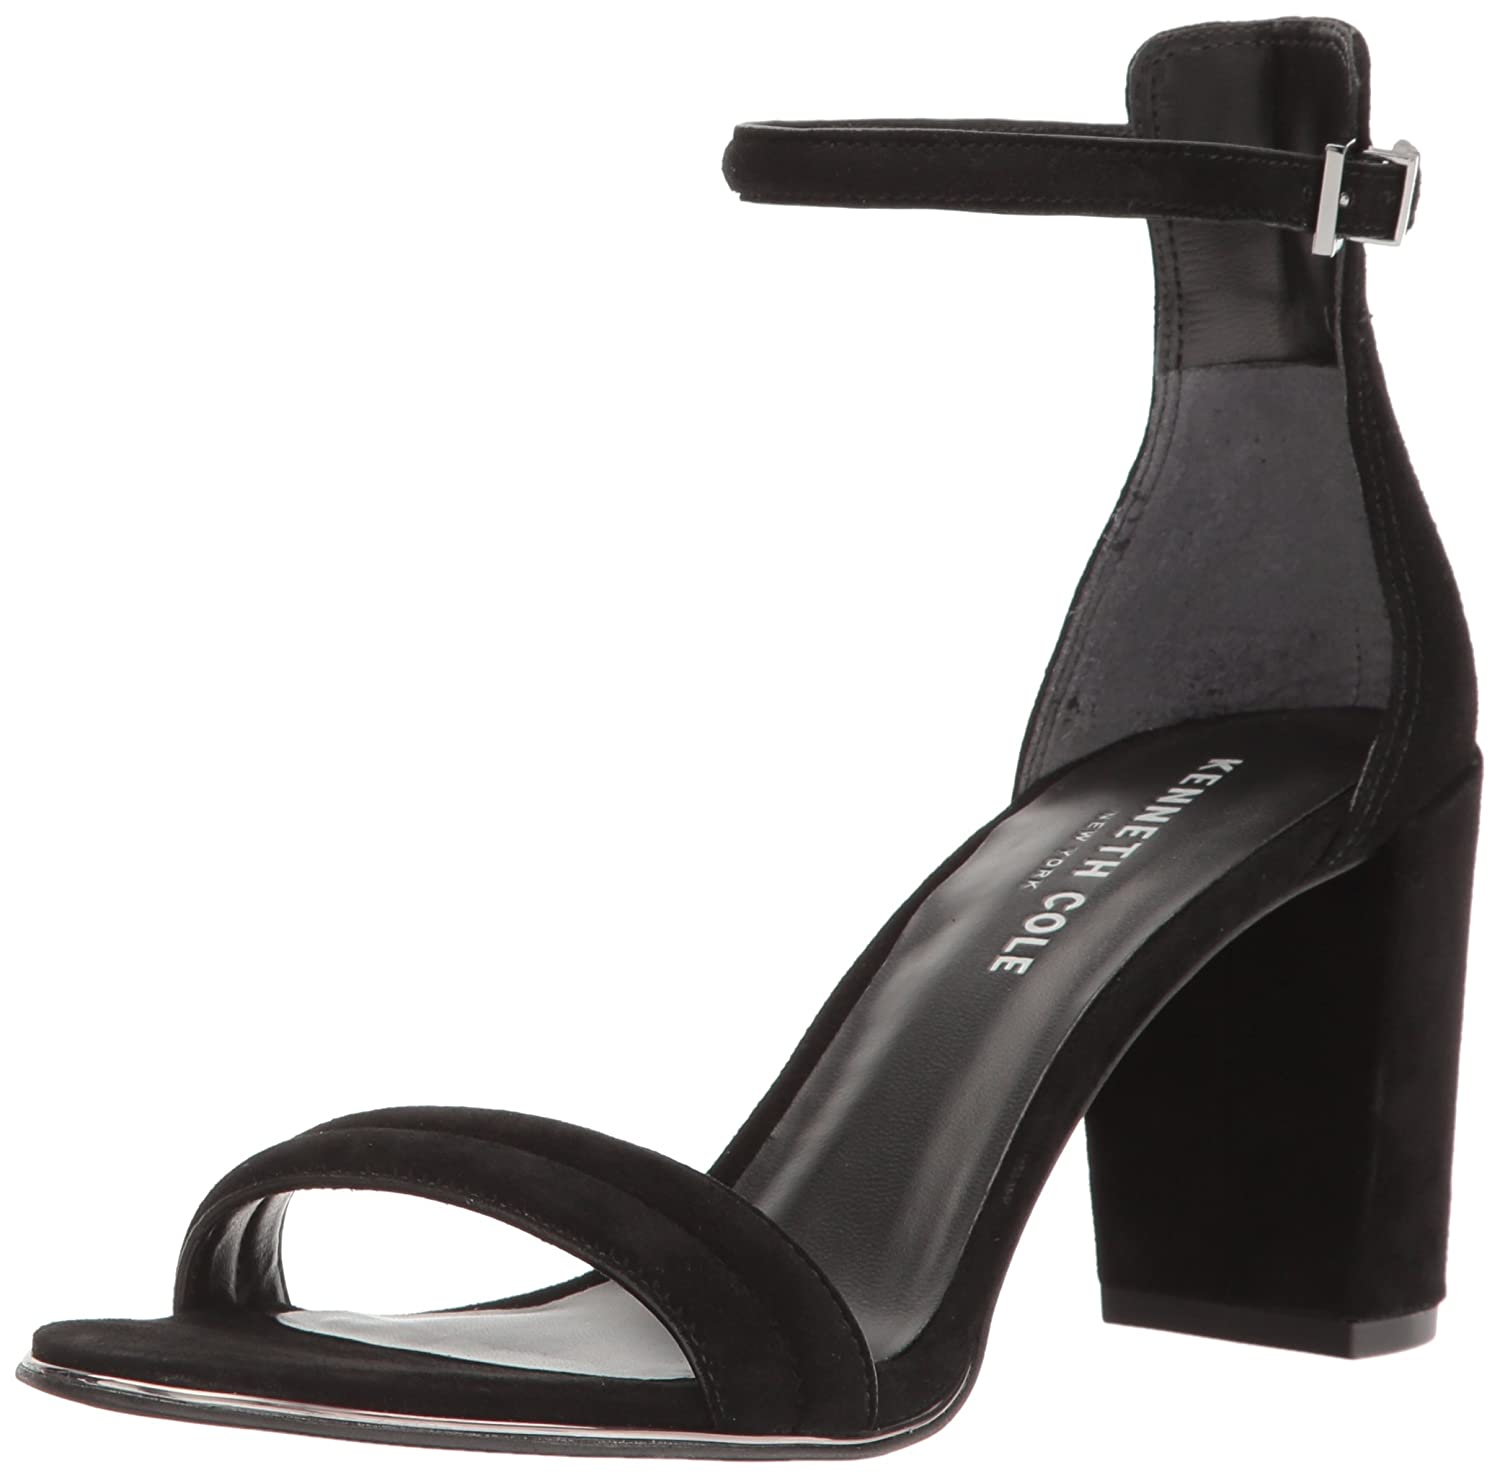 Kenneth Cole Mujeres Lex Zapatos 6.5 M US Mujeres